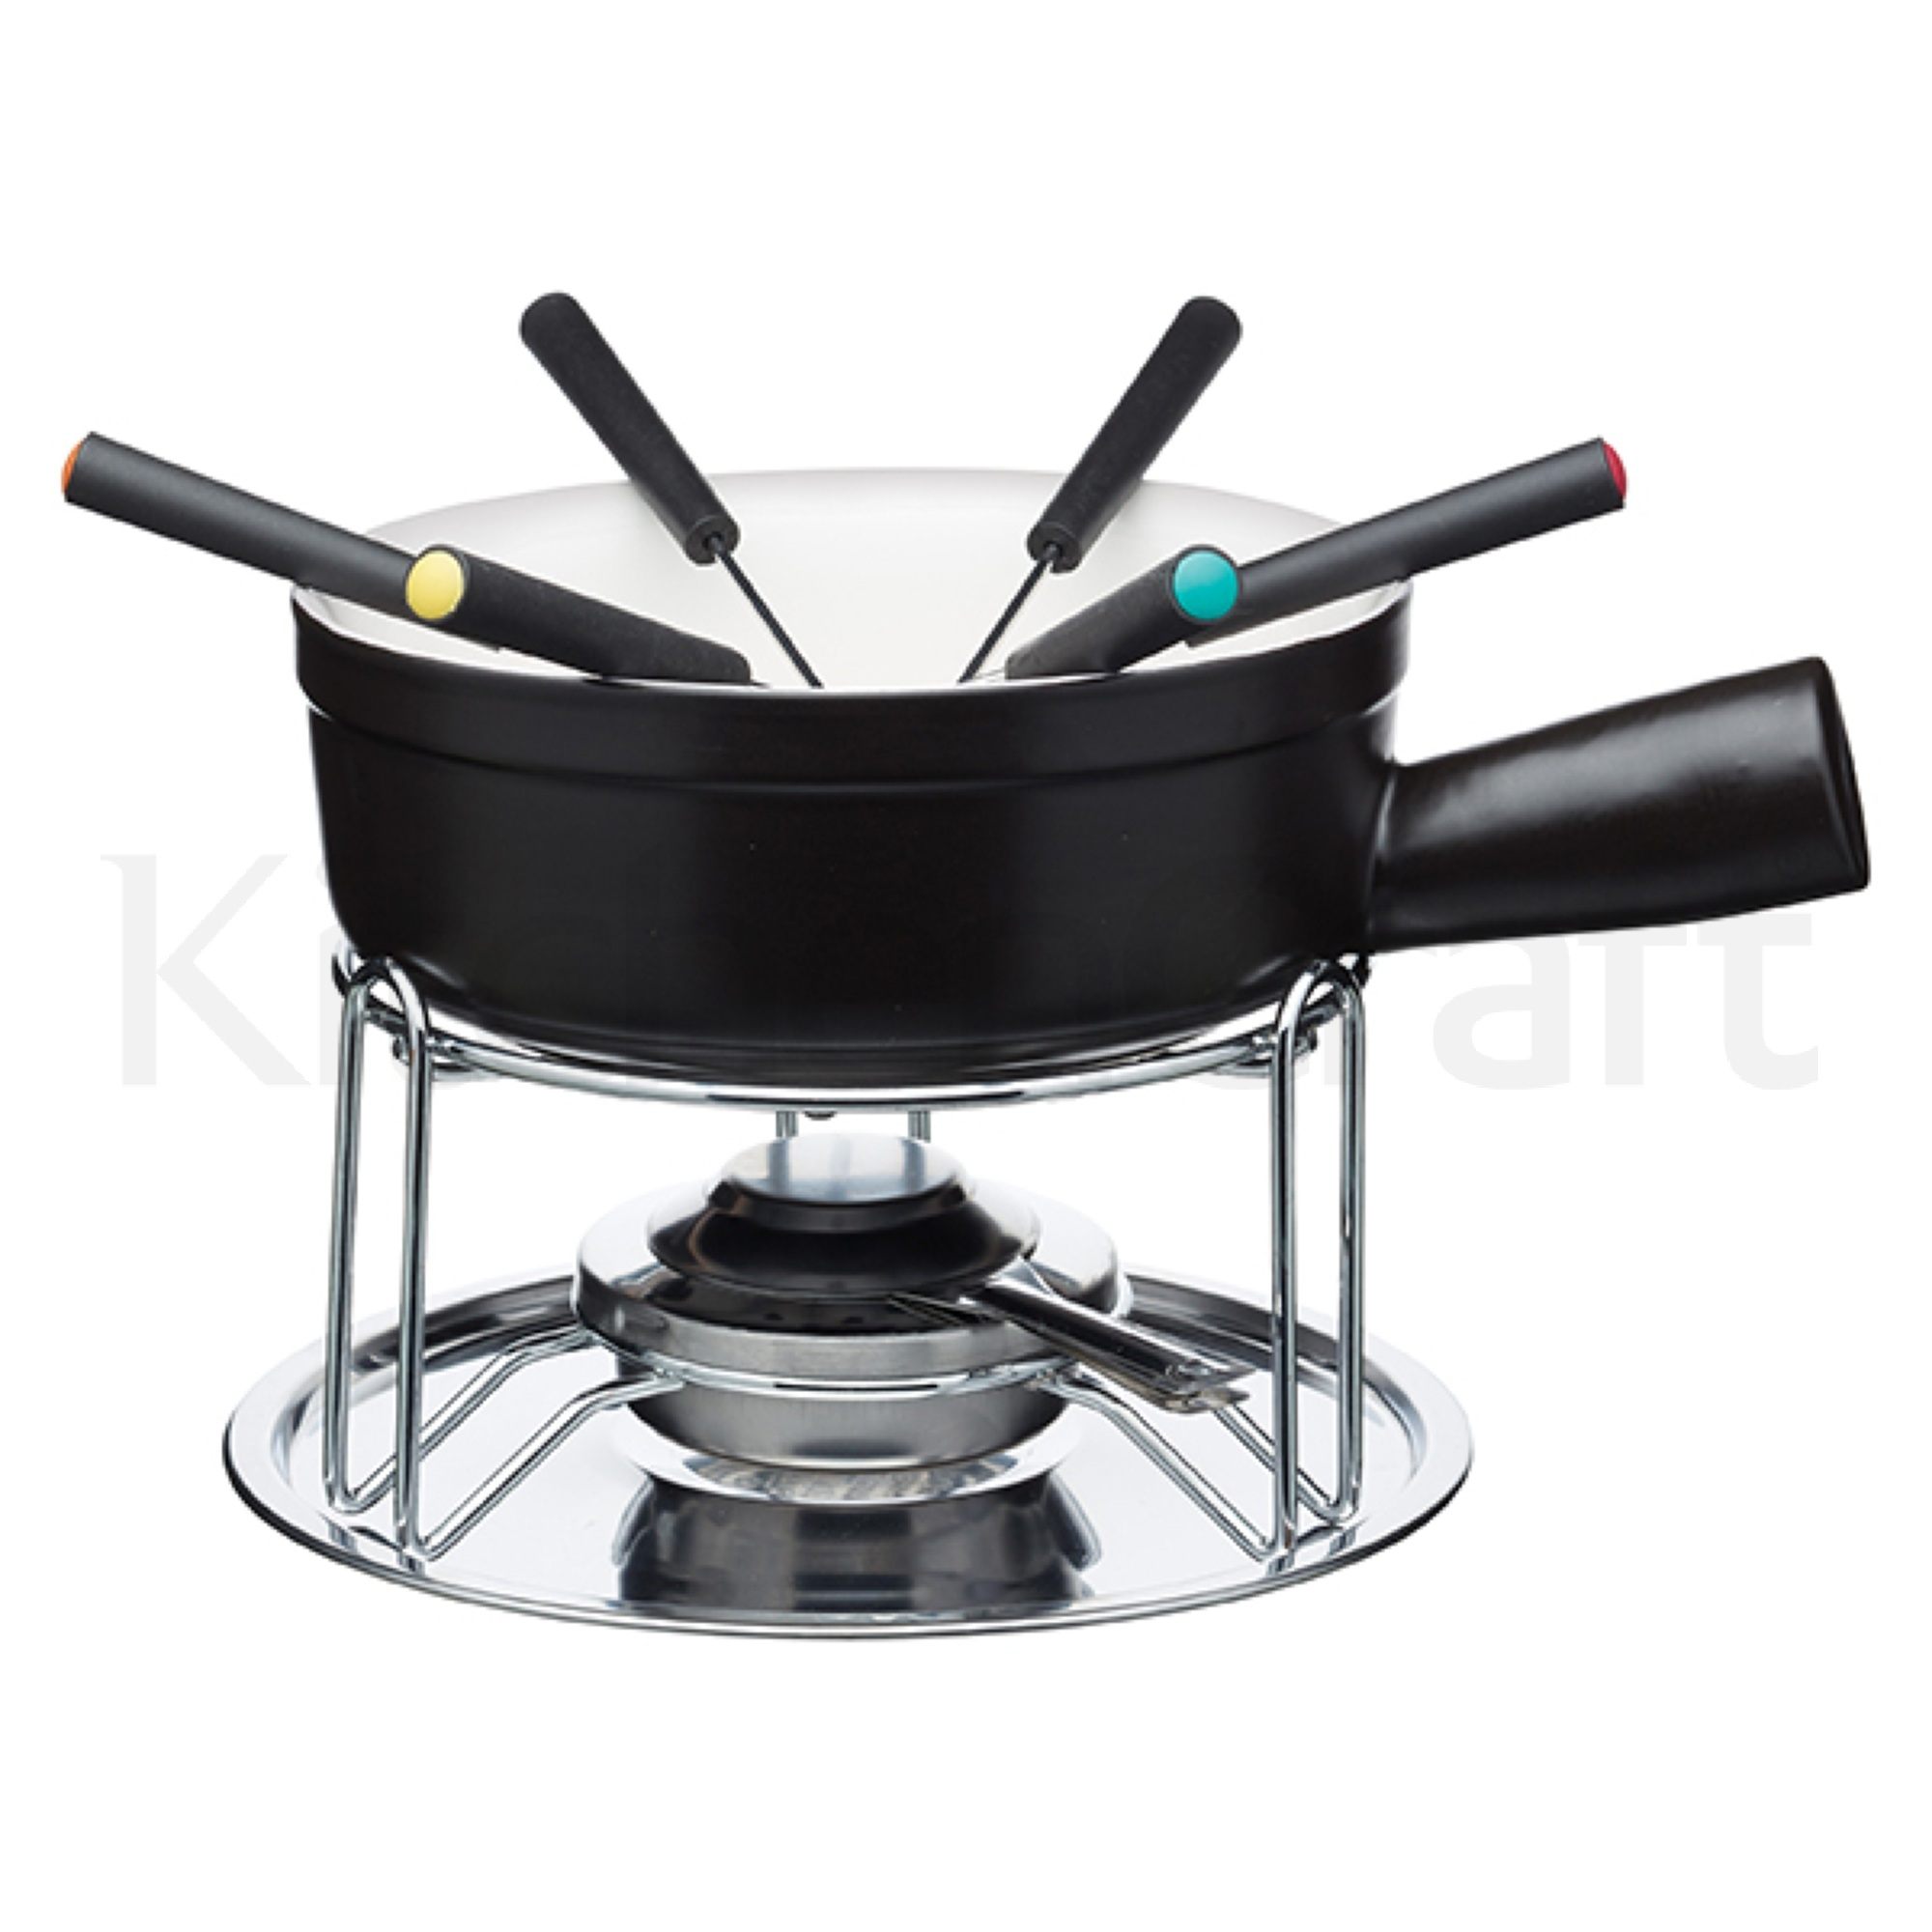 Artesà Ceramic Cheese Fondue Set | Gifts for Him | Gifts by Recipient | Gifts | Products | KitchenCraft